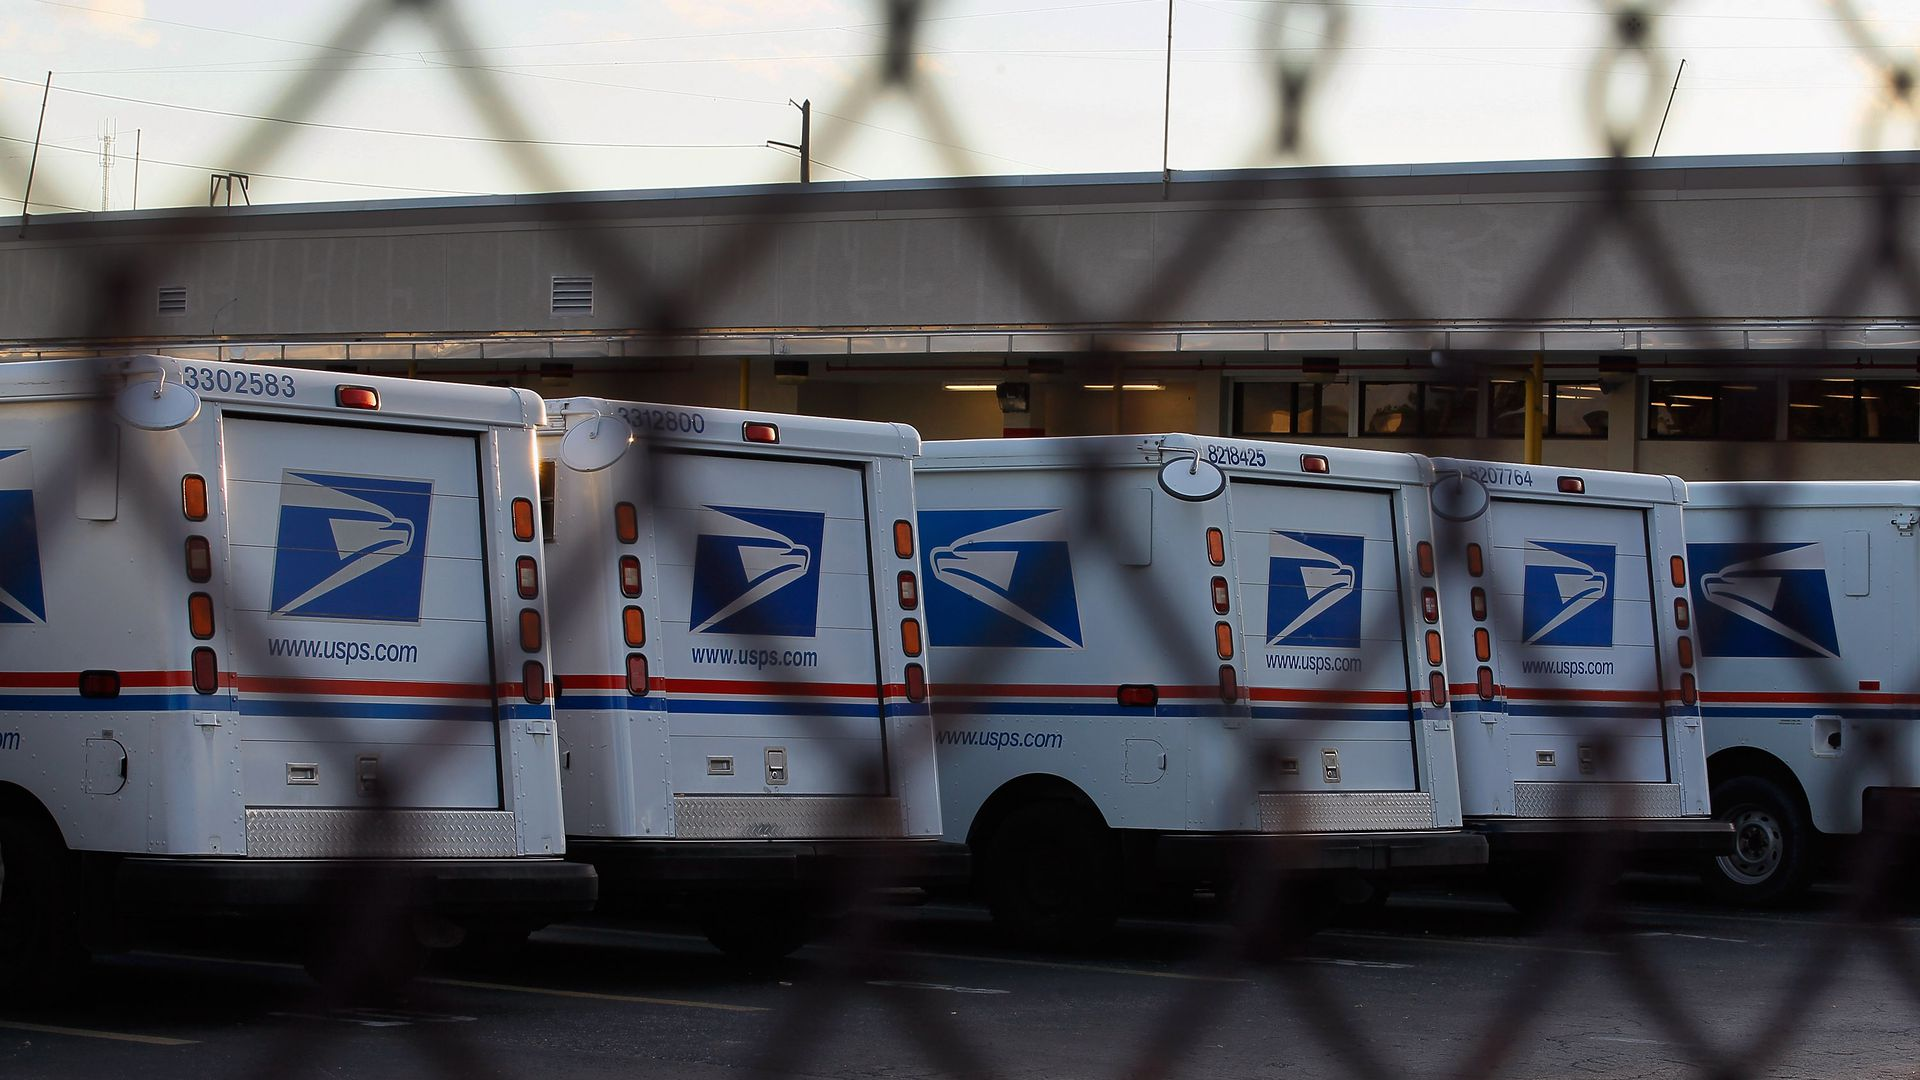 Postal service vehicles